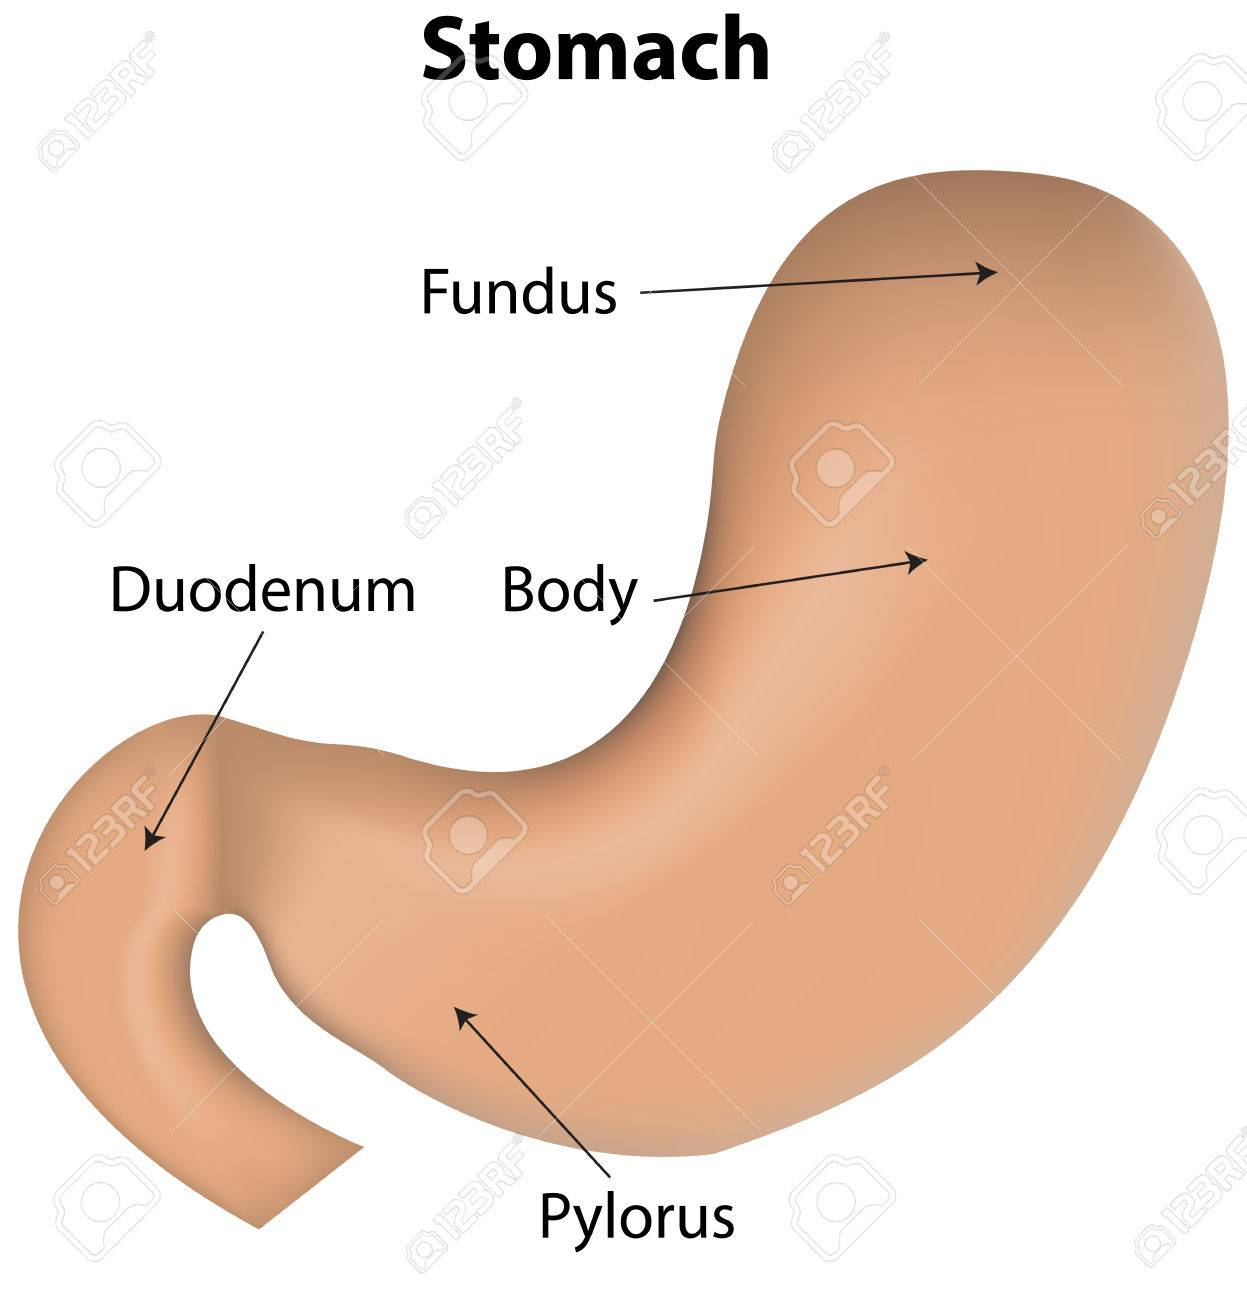 Stomach labeled diagram royalty free cliparts vectors and stock stomach labeled diagram stock vector 31447212 ccuart Gallery